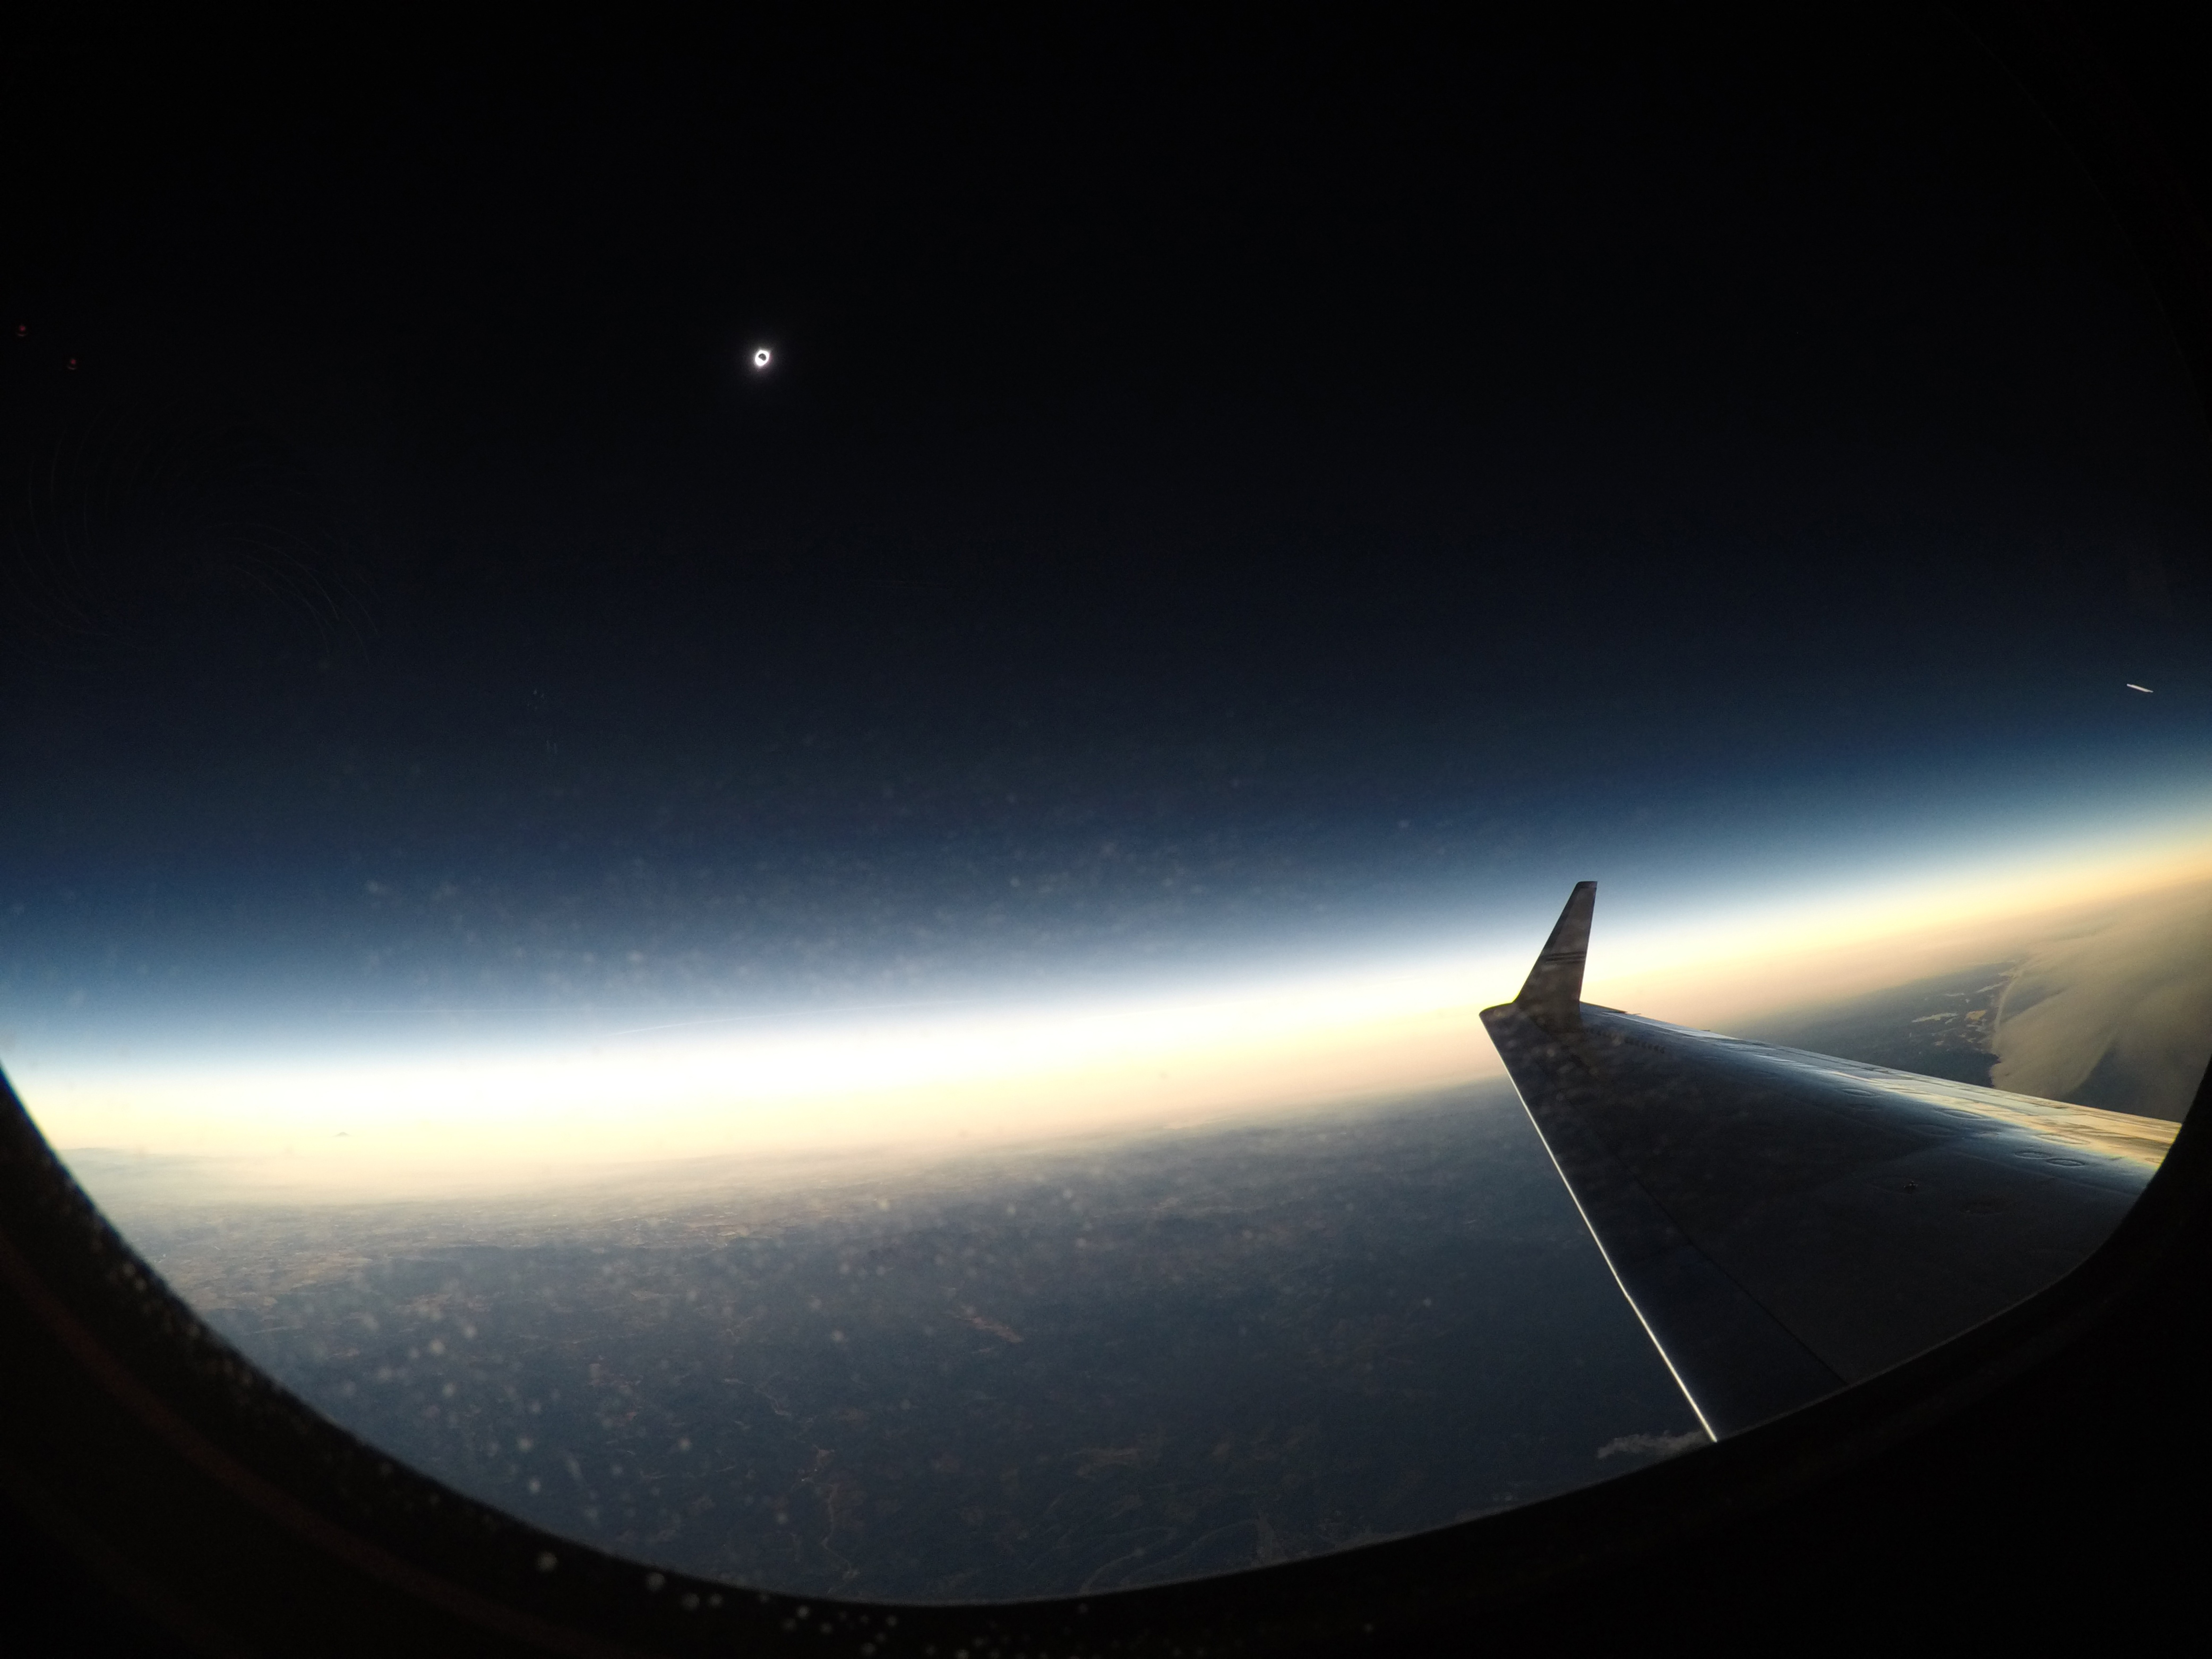 A total solar eclipse is seen on Monday, August 21, 2017 from onboard a NASA Armstrong Flight Research Center's Gulfstream III 25,000 feet above the Oregon coast. A total solar eclipse swept across a narrow portion of the contiguous United States from Lin (Foto: (NASA/Carla Thomas ))